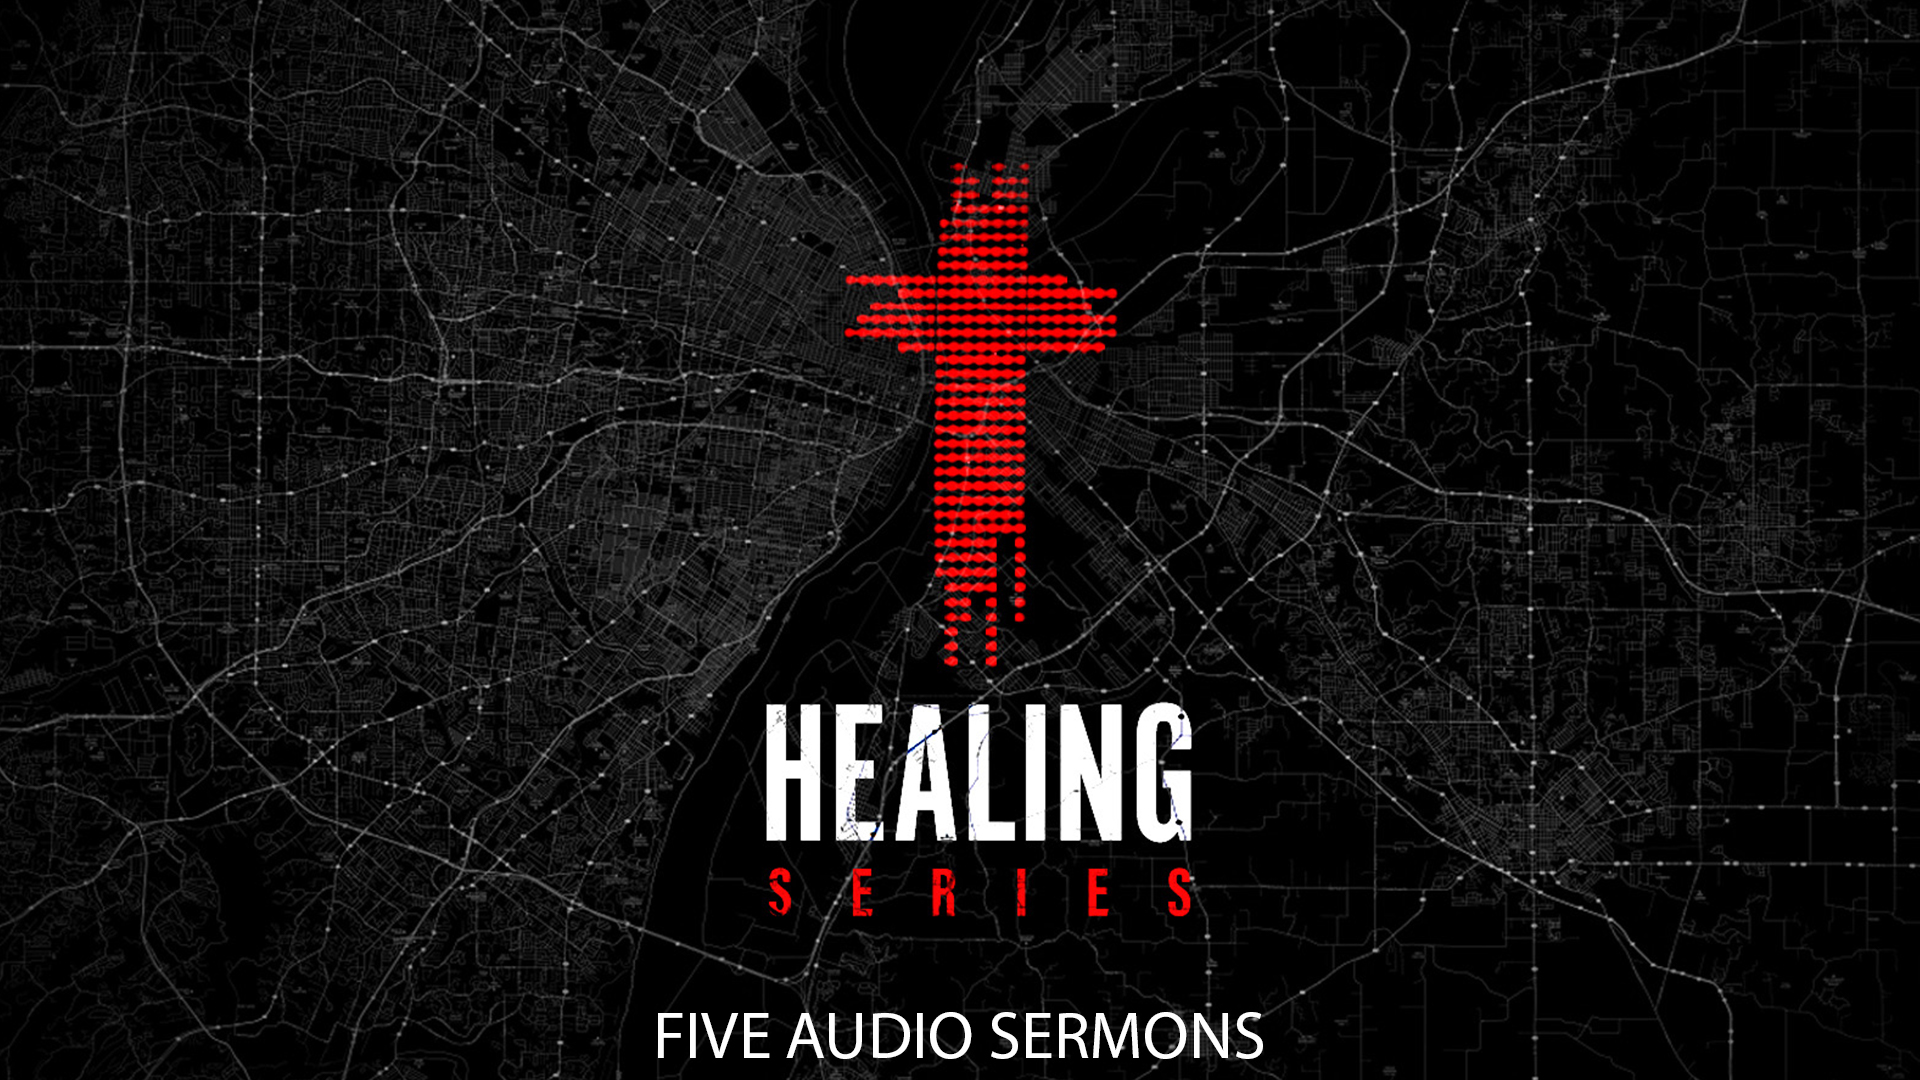 https://vladimirsavchuk.com/resources/healing-audio-series/